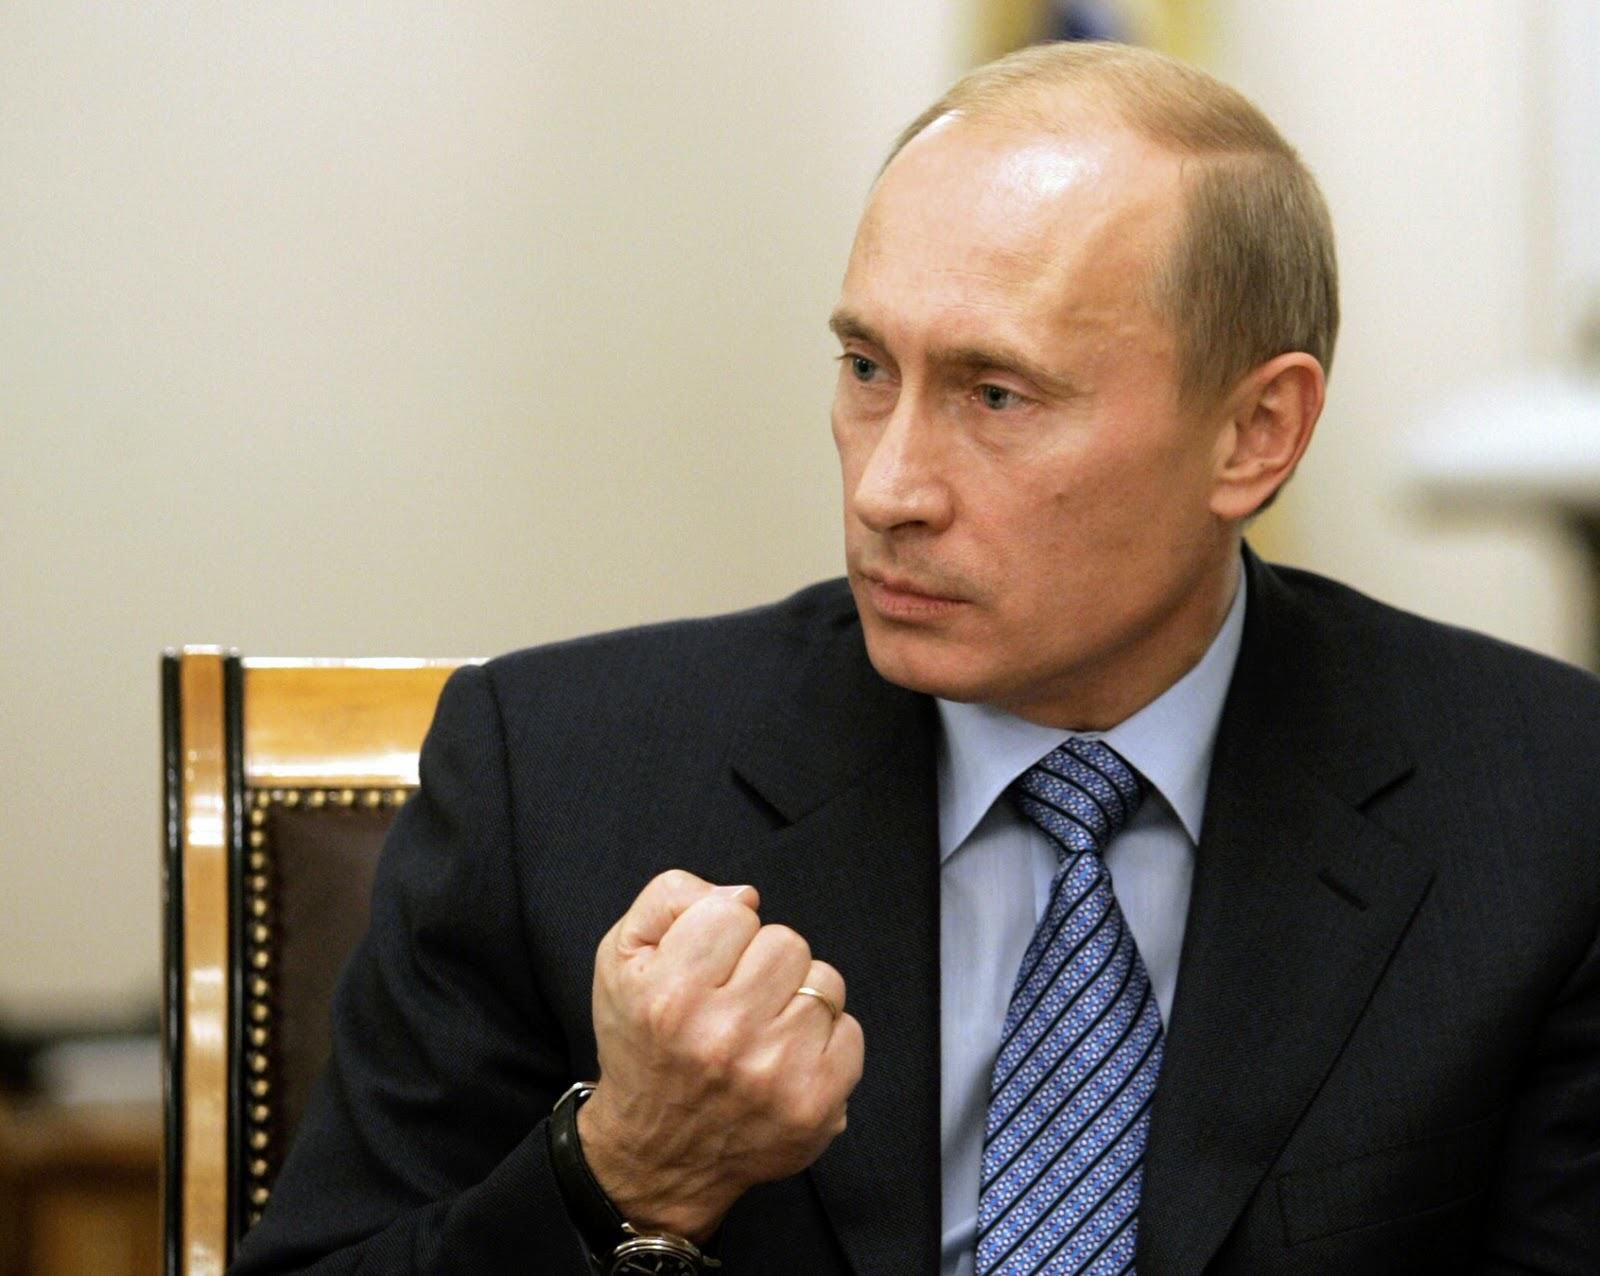 russia insider Putin Warns Of Serious Consequences After Turkey Downs Russian Jet